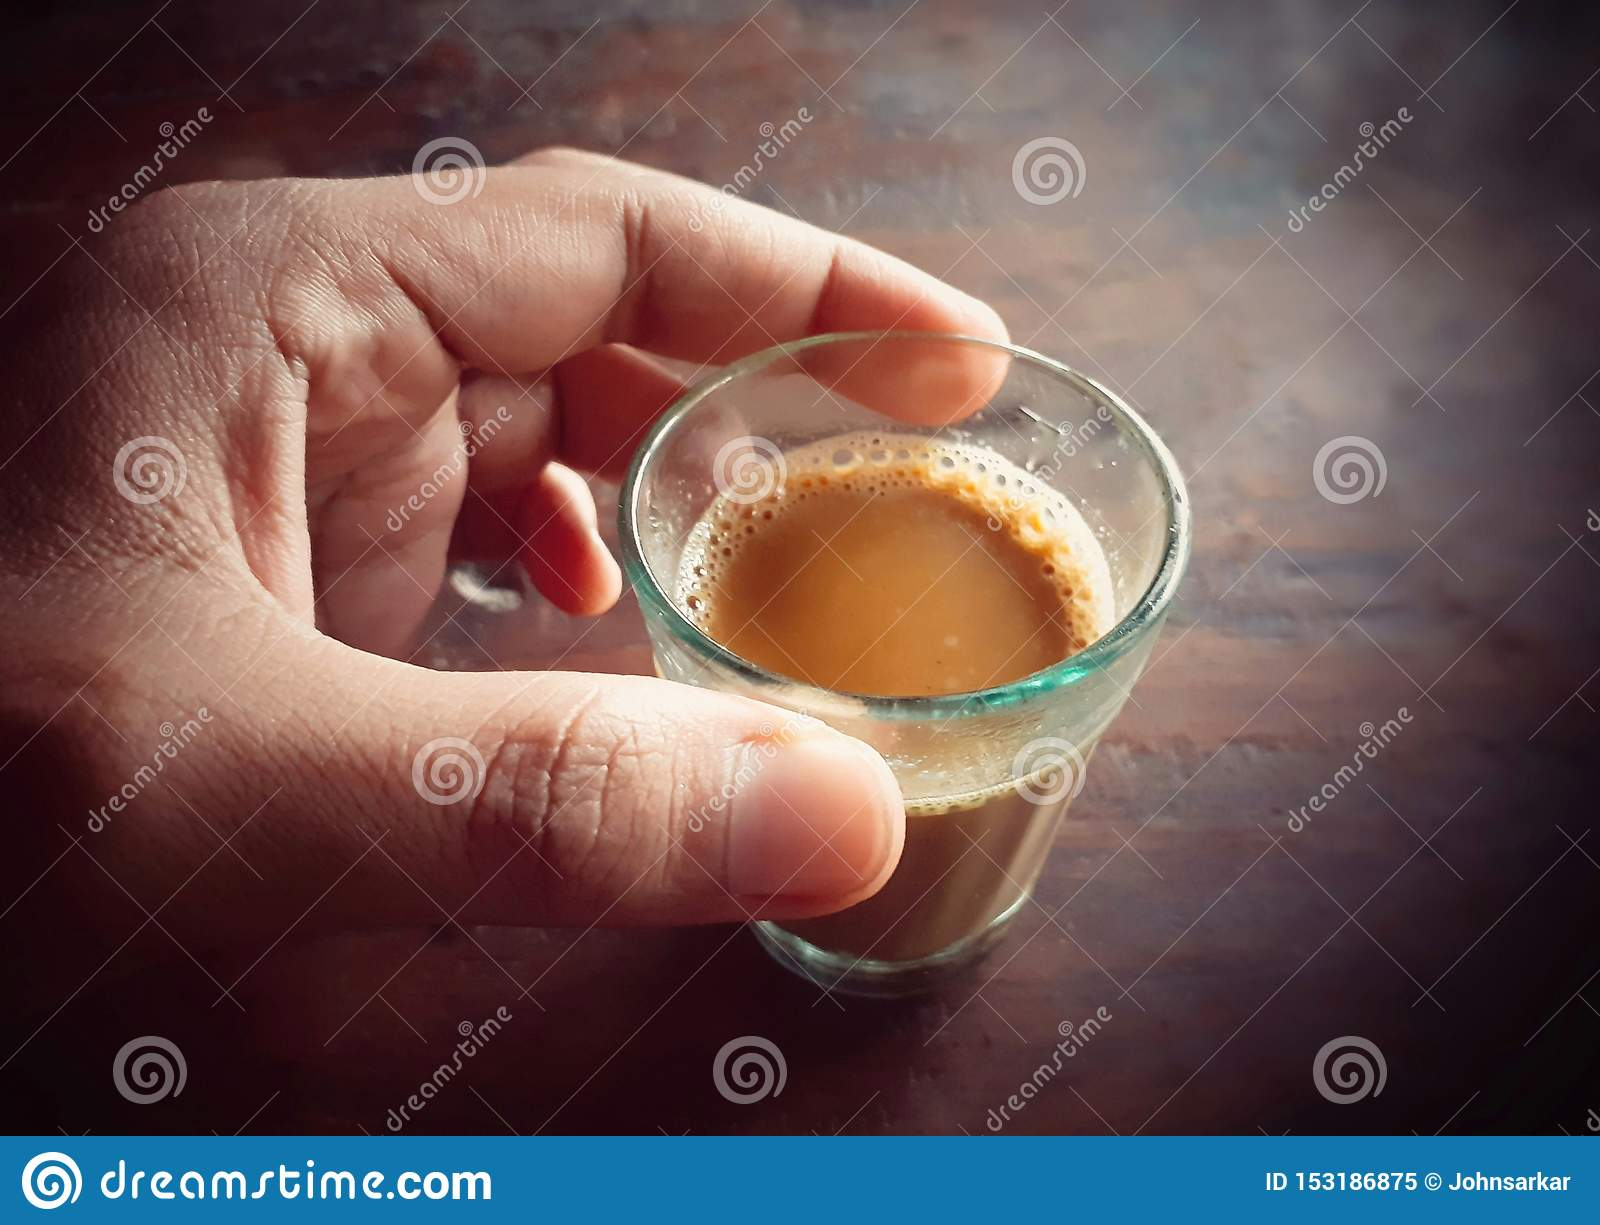 Male hand holding a small glass of tea